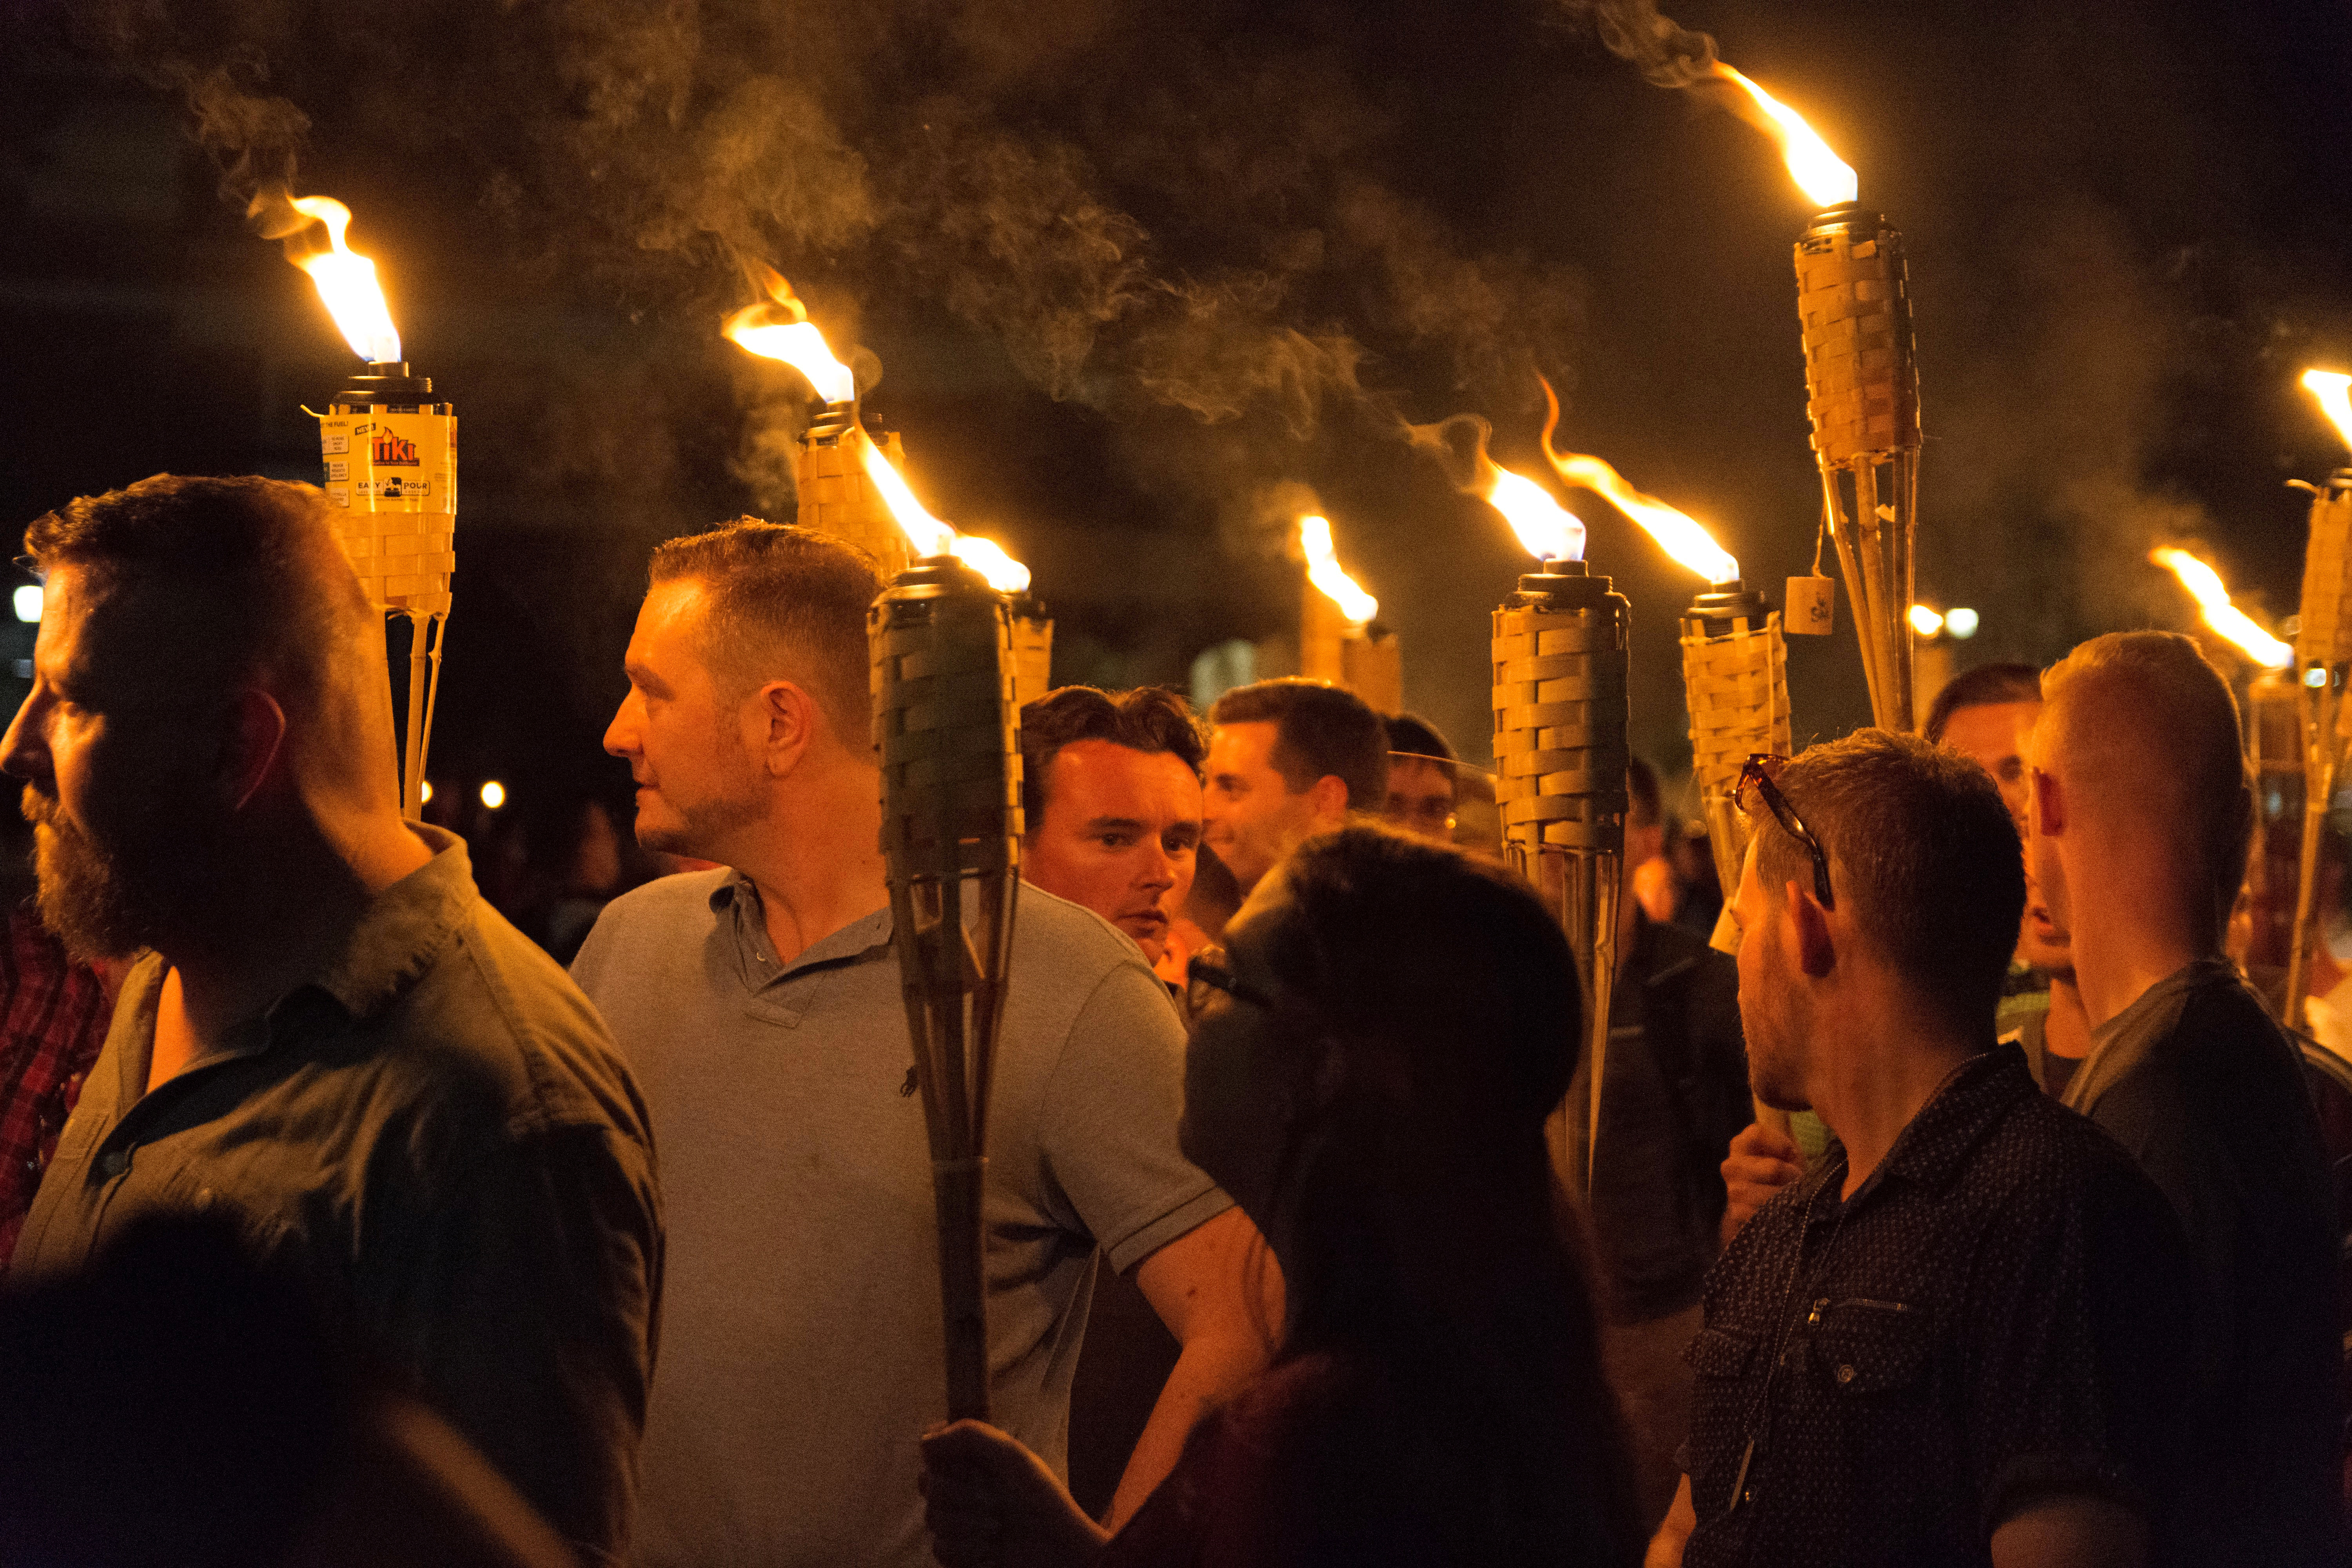 White nationalists carry torches on the grounds of the University of Virginia, on the eve of a planned Unite The Right rally in Charlottesville, Virginia, U.S. August 11, 2017. Picture taken August 11, 2017. Alejandro Alvarez/News2Share via REUTERS. MANDATORY CREDIT. NO RESALES. NO ARCHIVES - RTS1BG2B